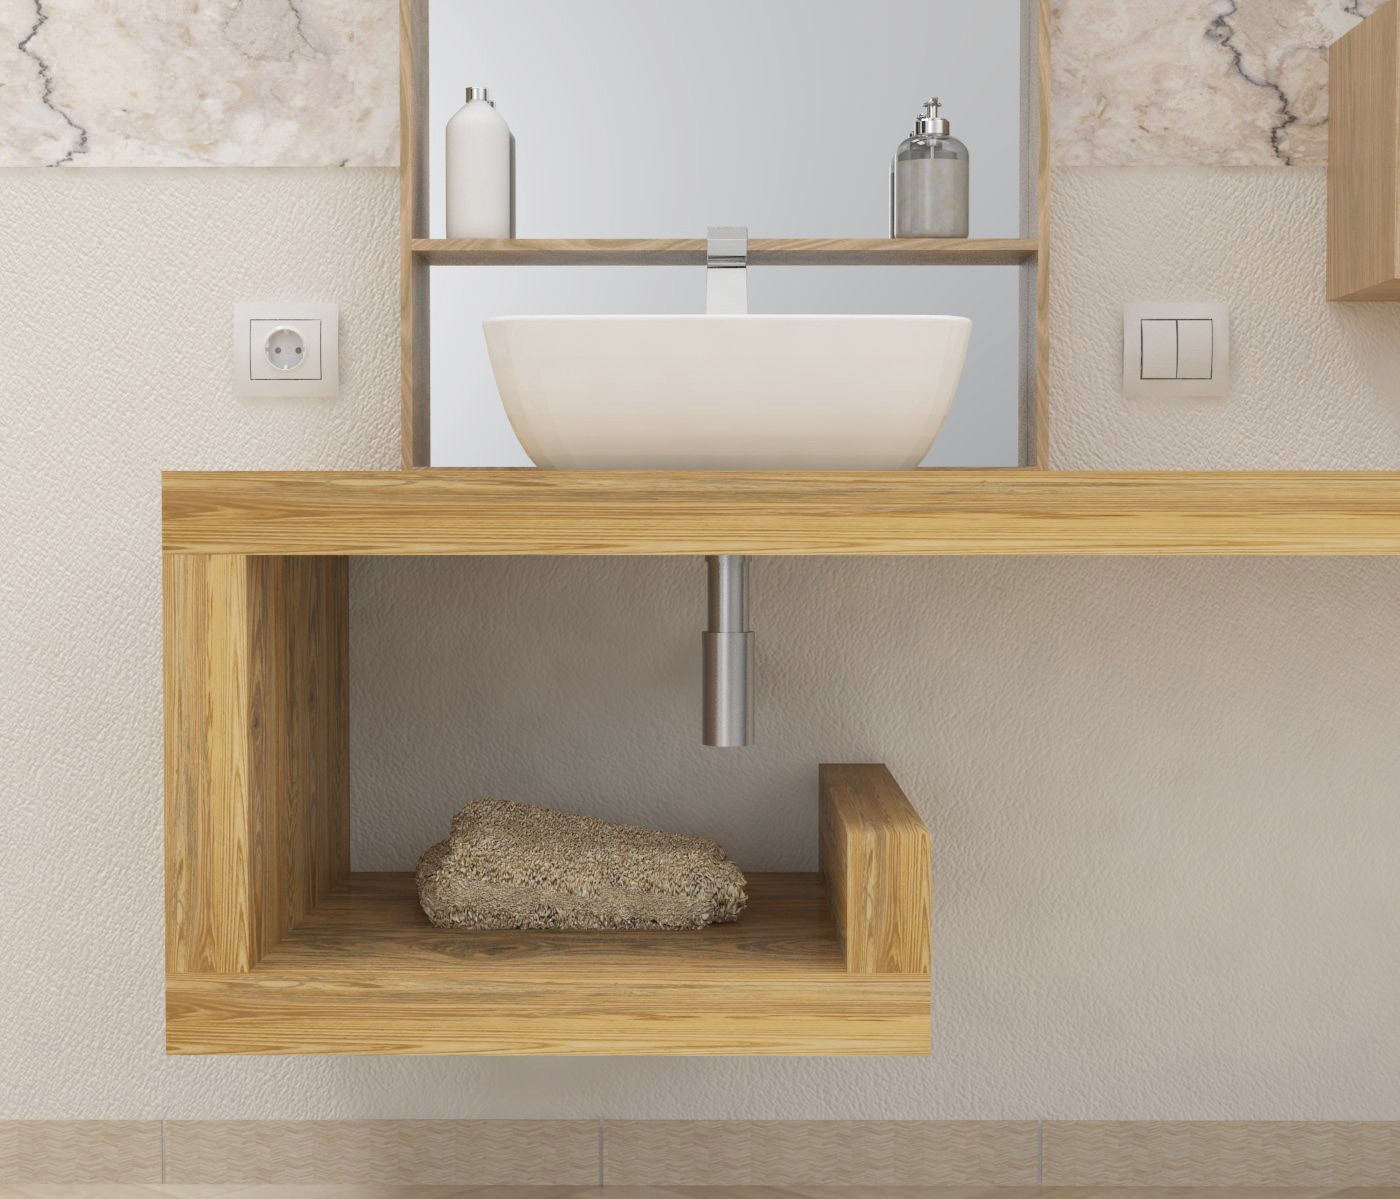 mensola lavabo a g in legno massello su misura spessore 5 cm mobile bagno ebay. Black Bedroom Furniture Sets. Home Design Ideas